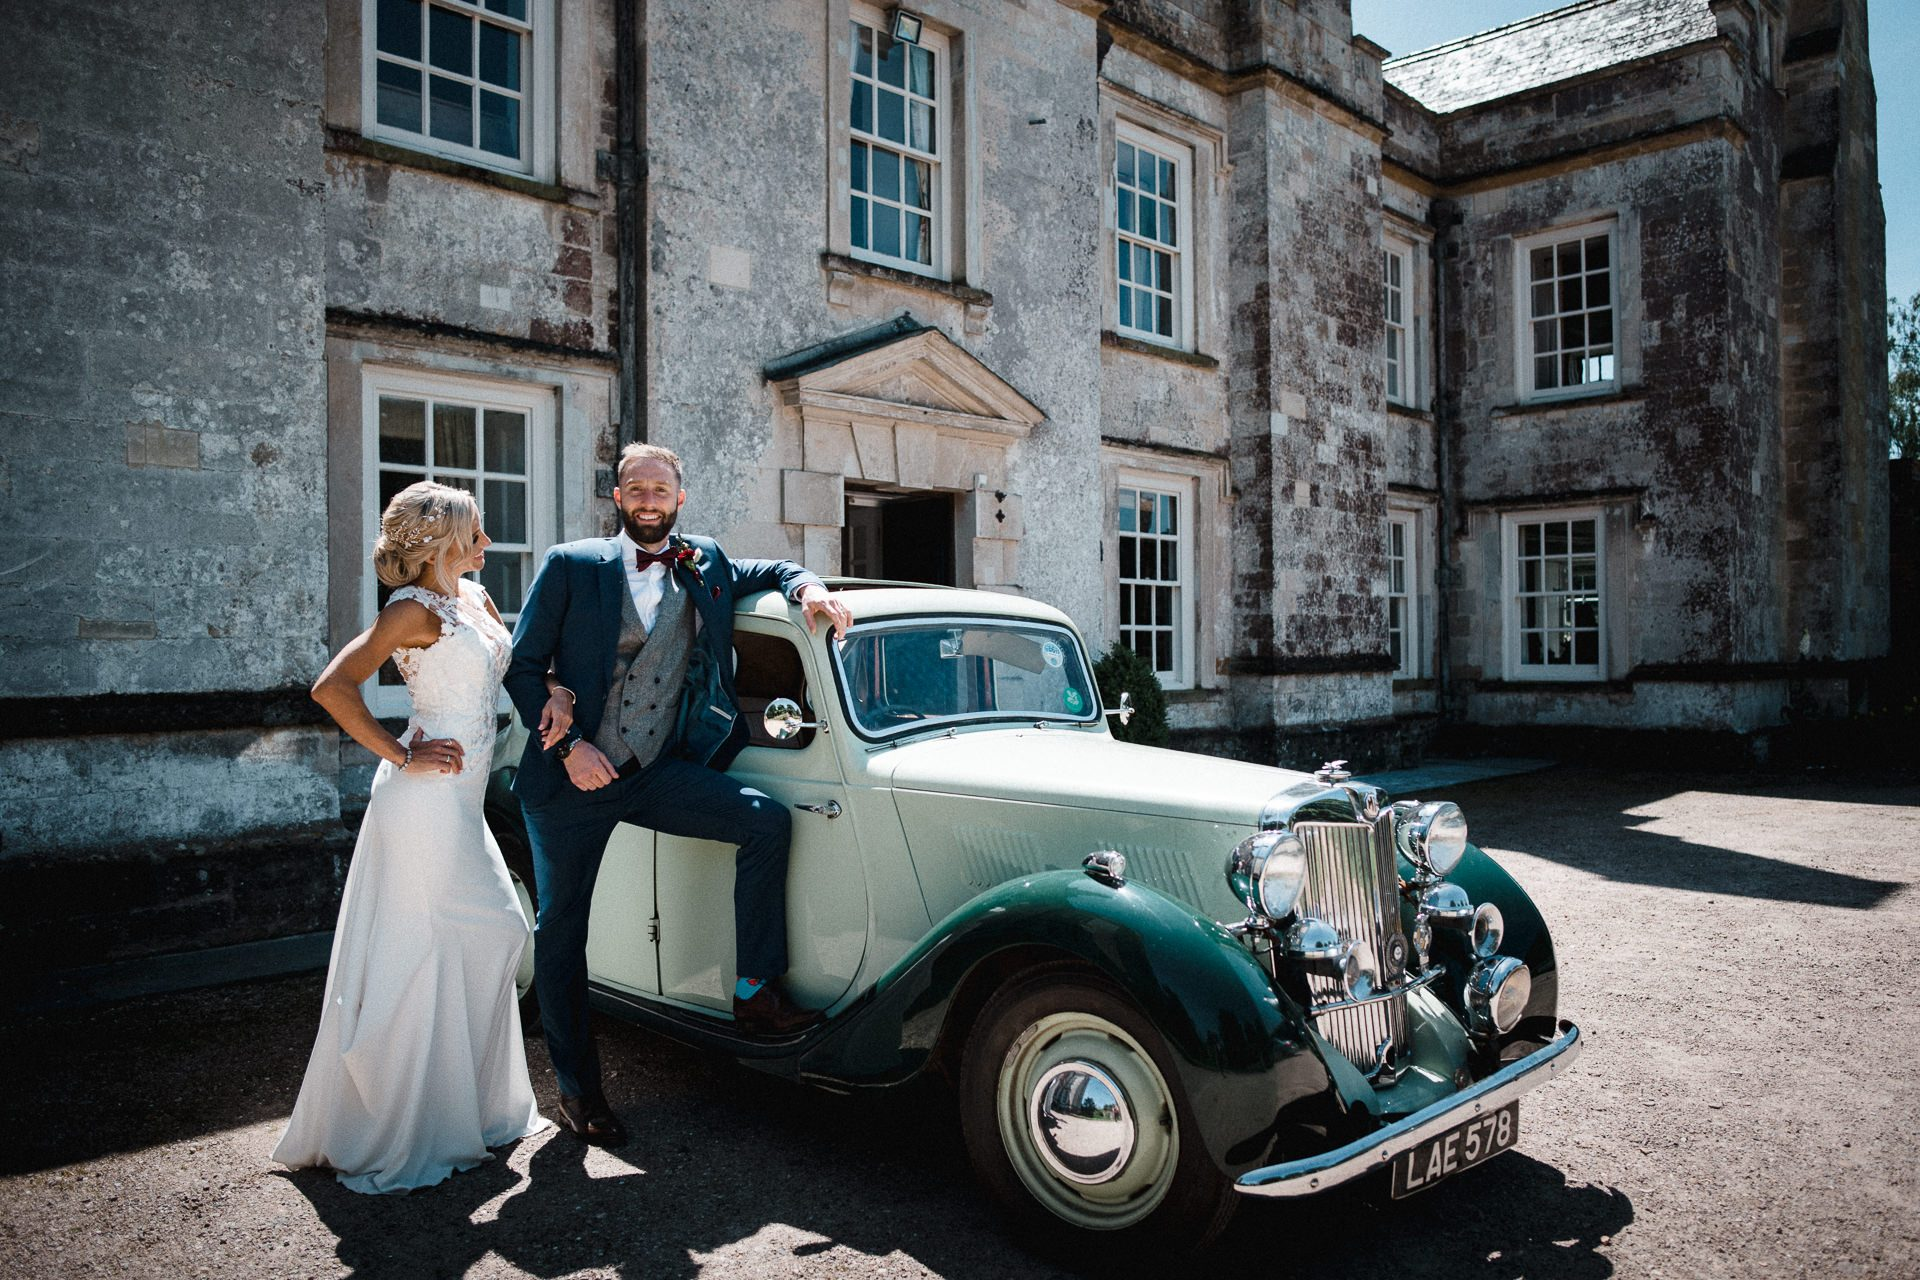 0093-DEVON-SOMERSET-WEDDING-PHOTOGRAPHER-0404-BEST-OF-2019-LOUISE-MAY-DEVON-SOMERSET-WEDDING-PHOTOGRAPHY-LM2_1779